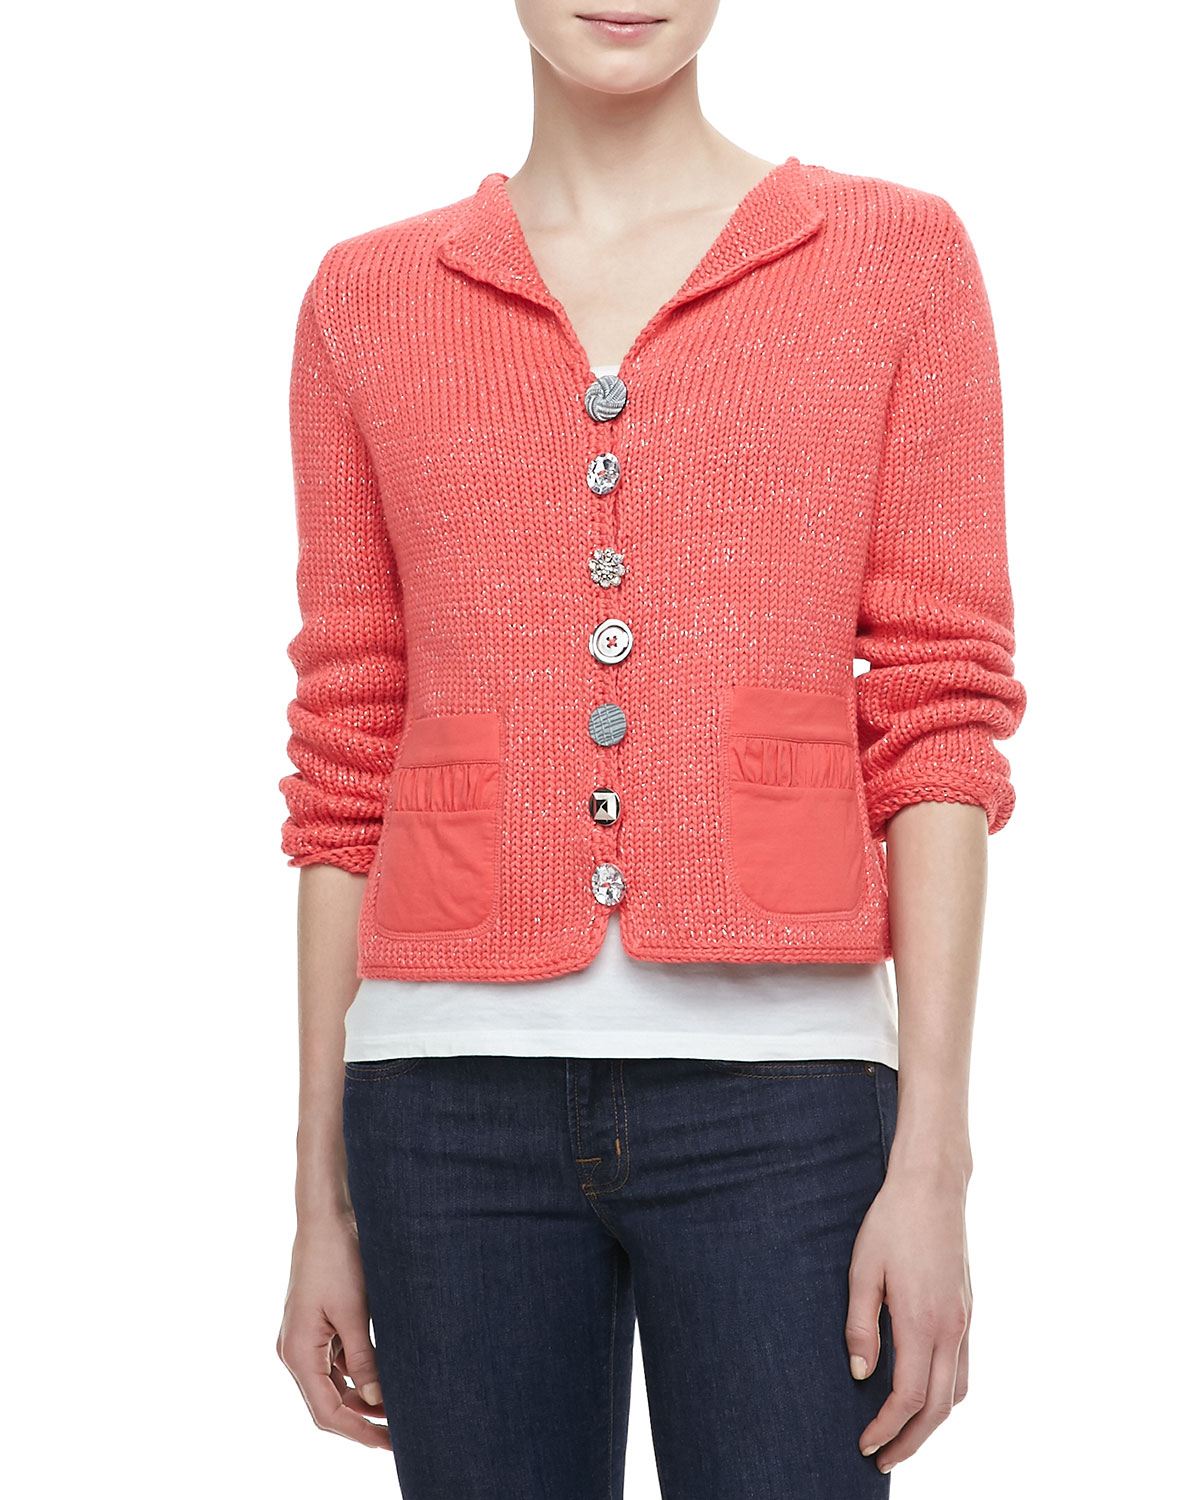 Lyst - Pure Handknit Bay Breeze Multi-Button Cardigan in ...